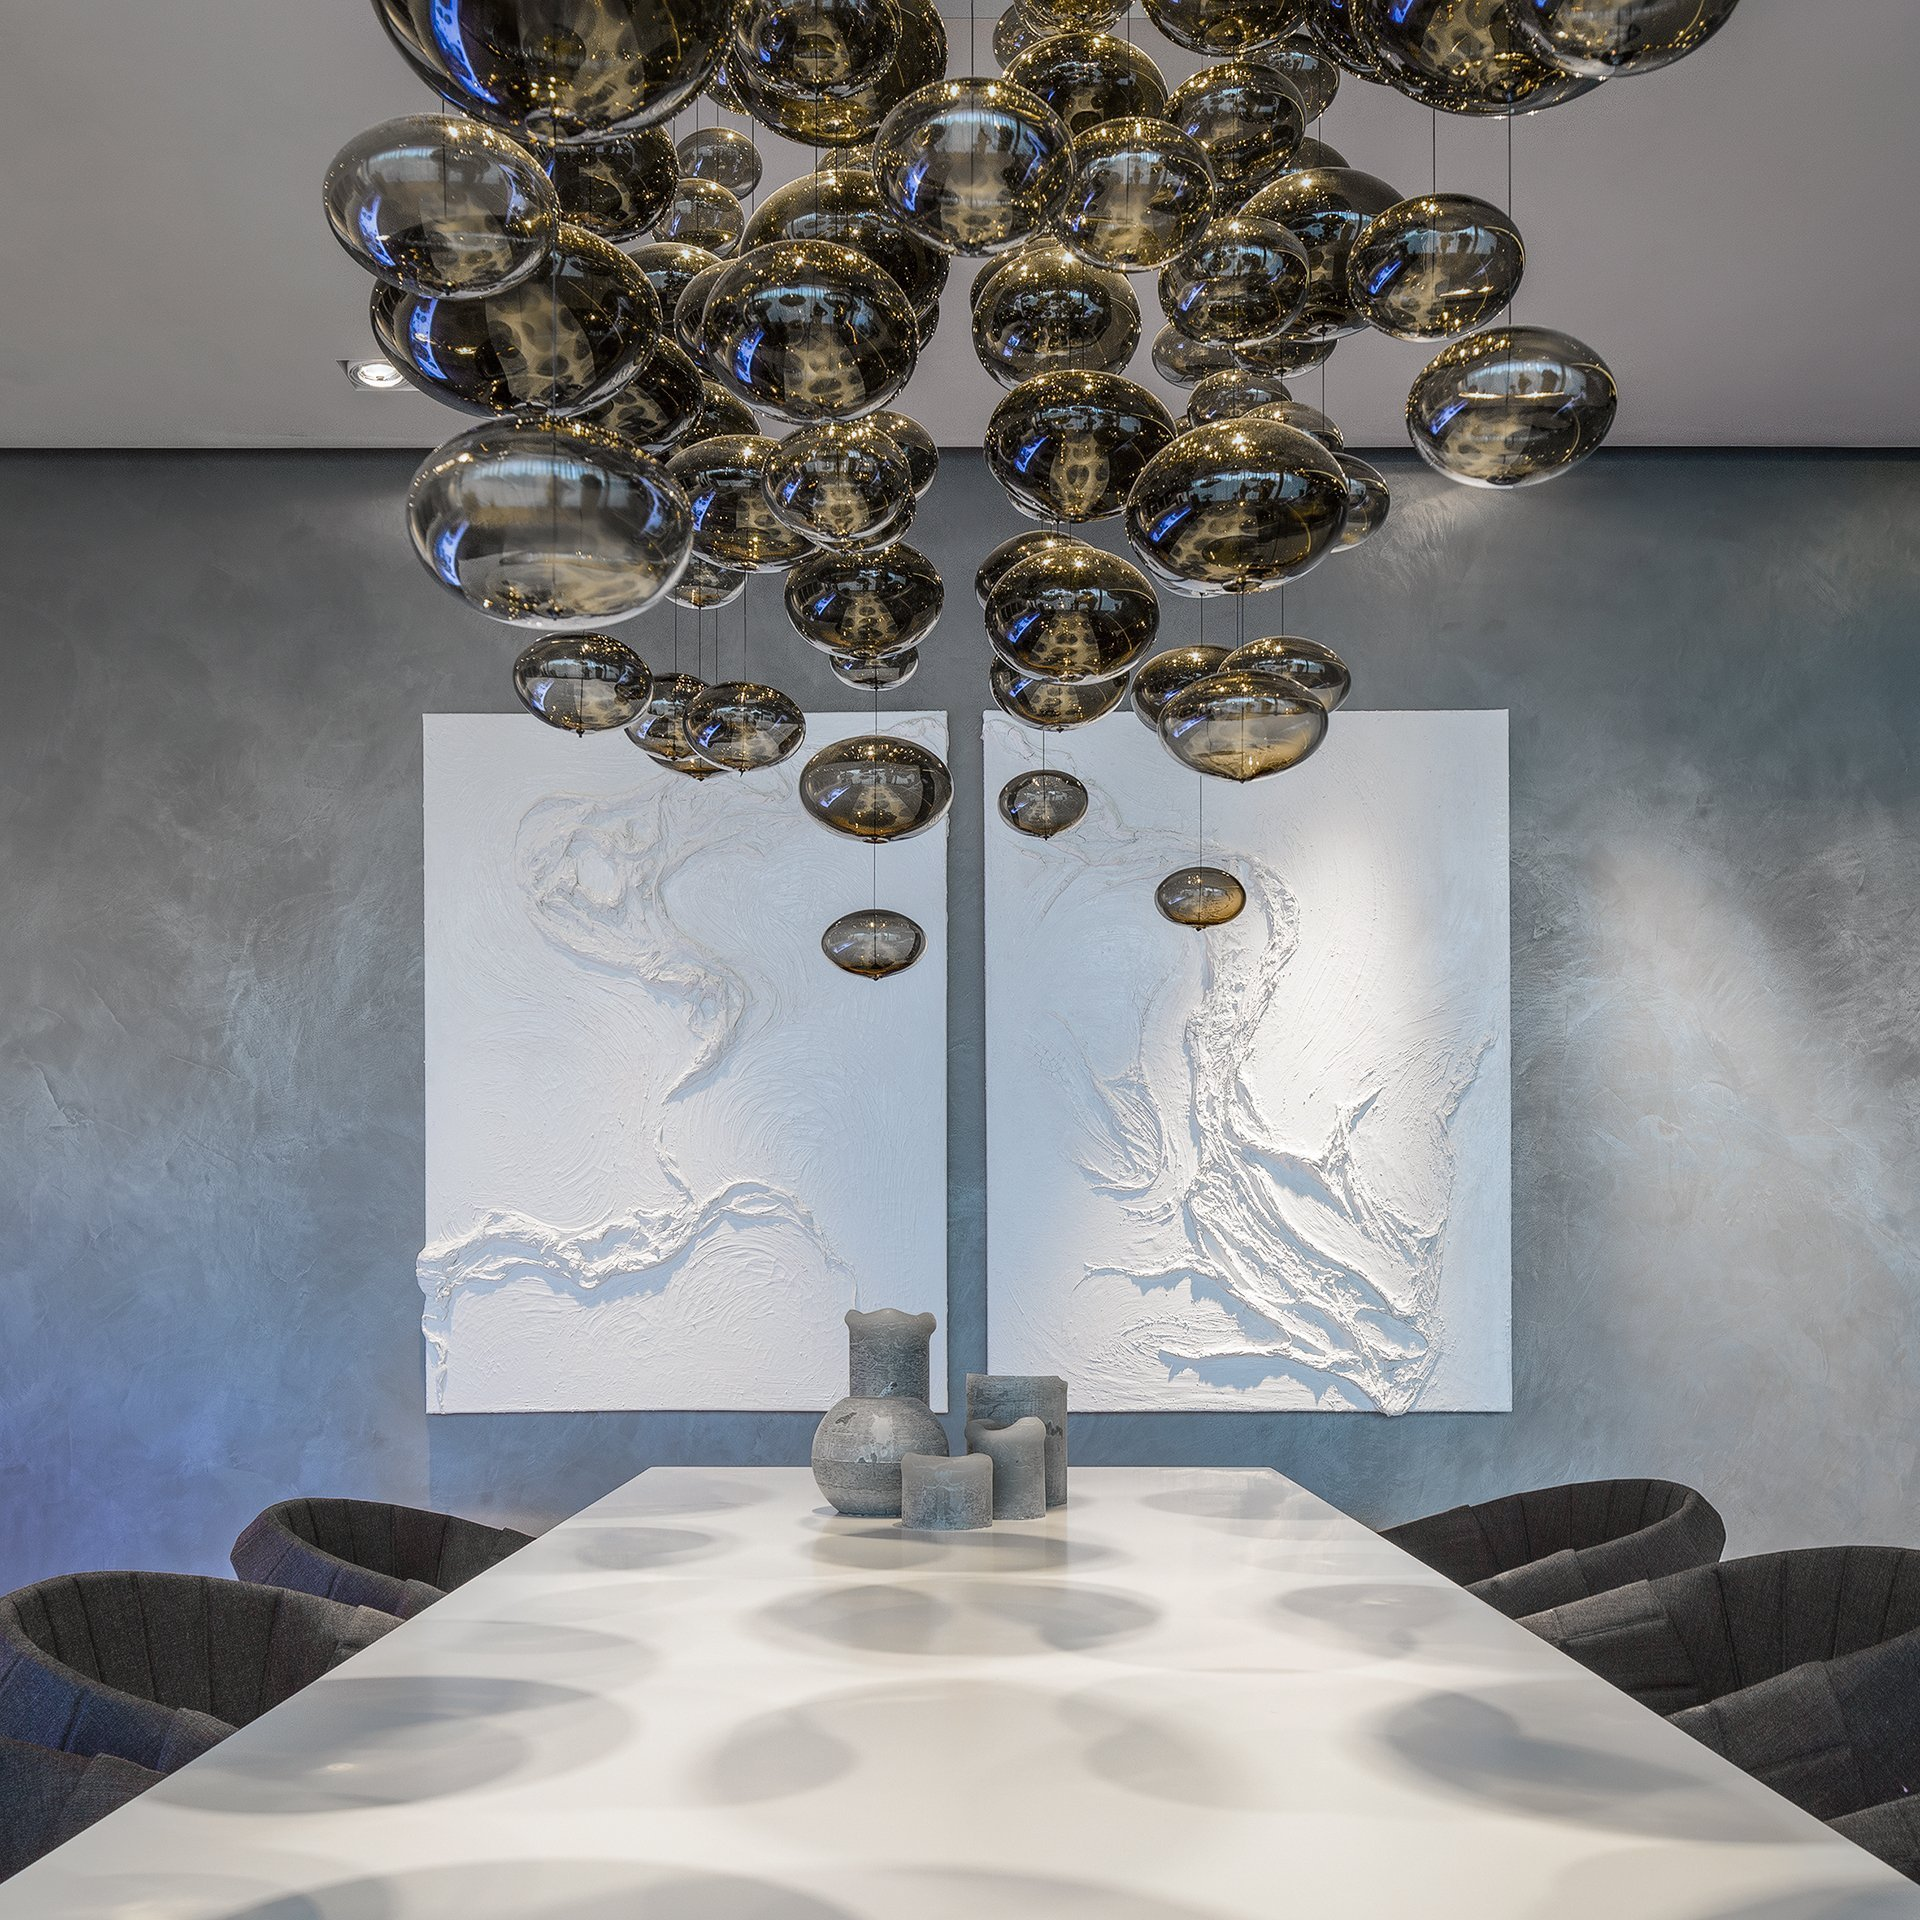 'Dream' chandelier hangs above 'b'oom' design table, with a diptych artwork on the wall featuring unusual stucco work.